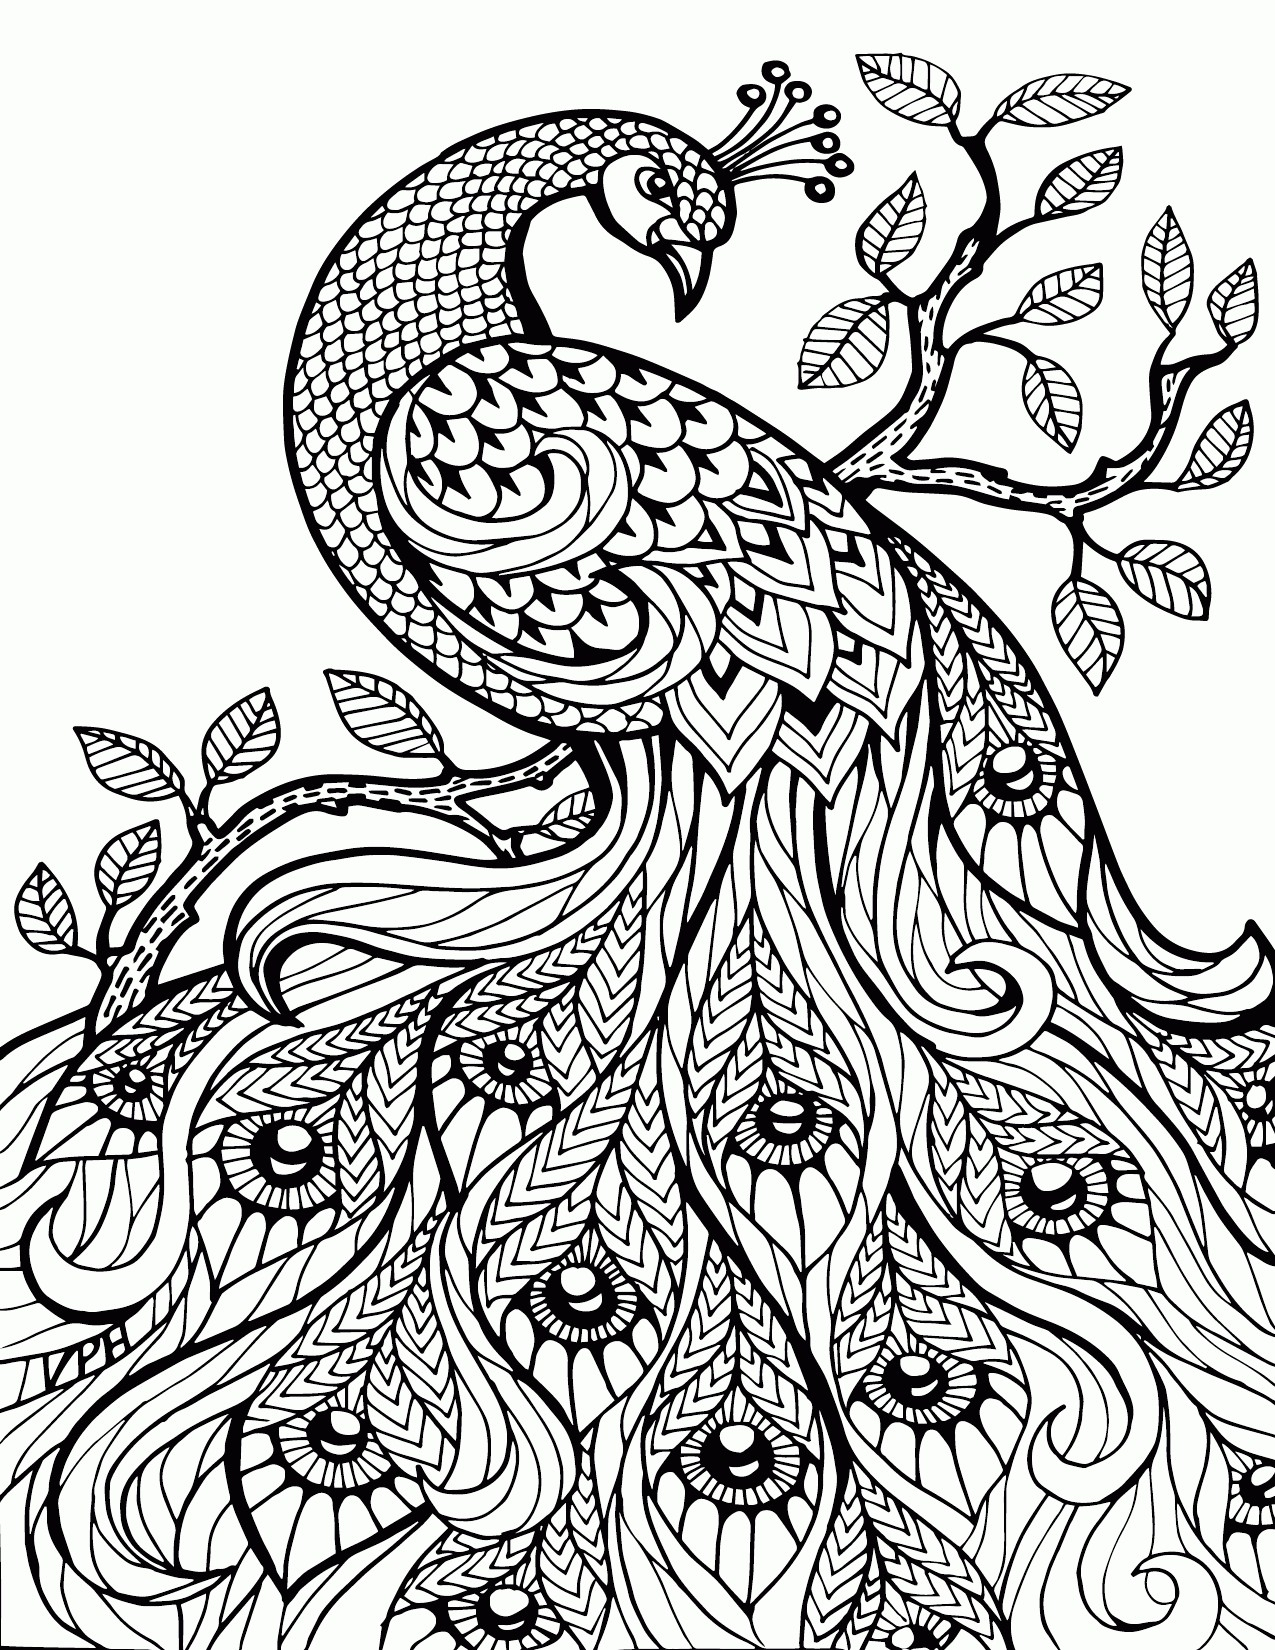 Chameleon Coloring Page The Mixed Up Chameleon Coloring Page New Adult Stress Relief